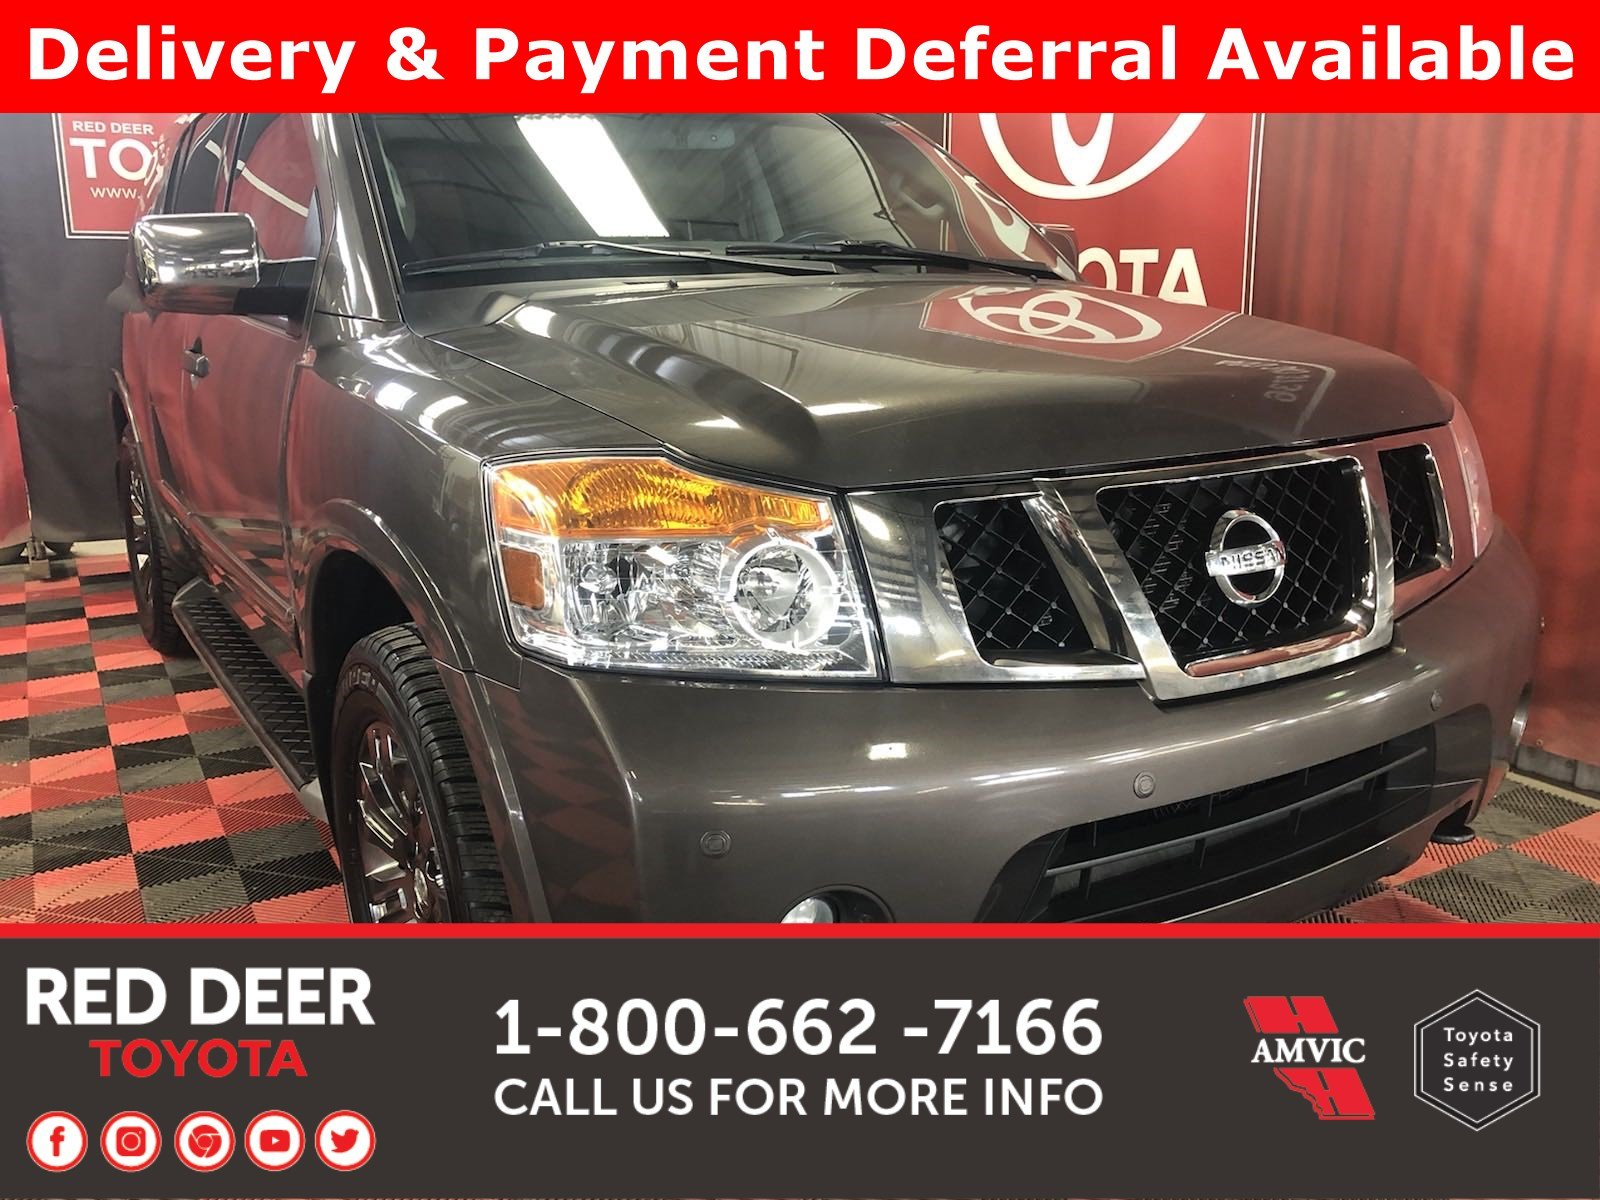 Pre-Owned 2015 Nissan Armada Platinum Edition - SAVE THE GST!